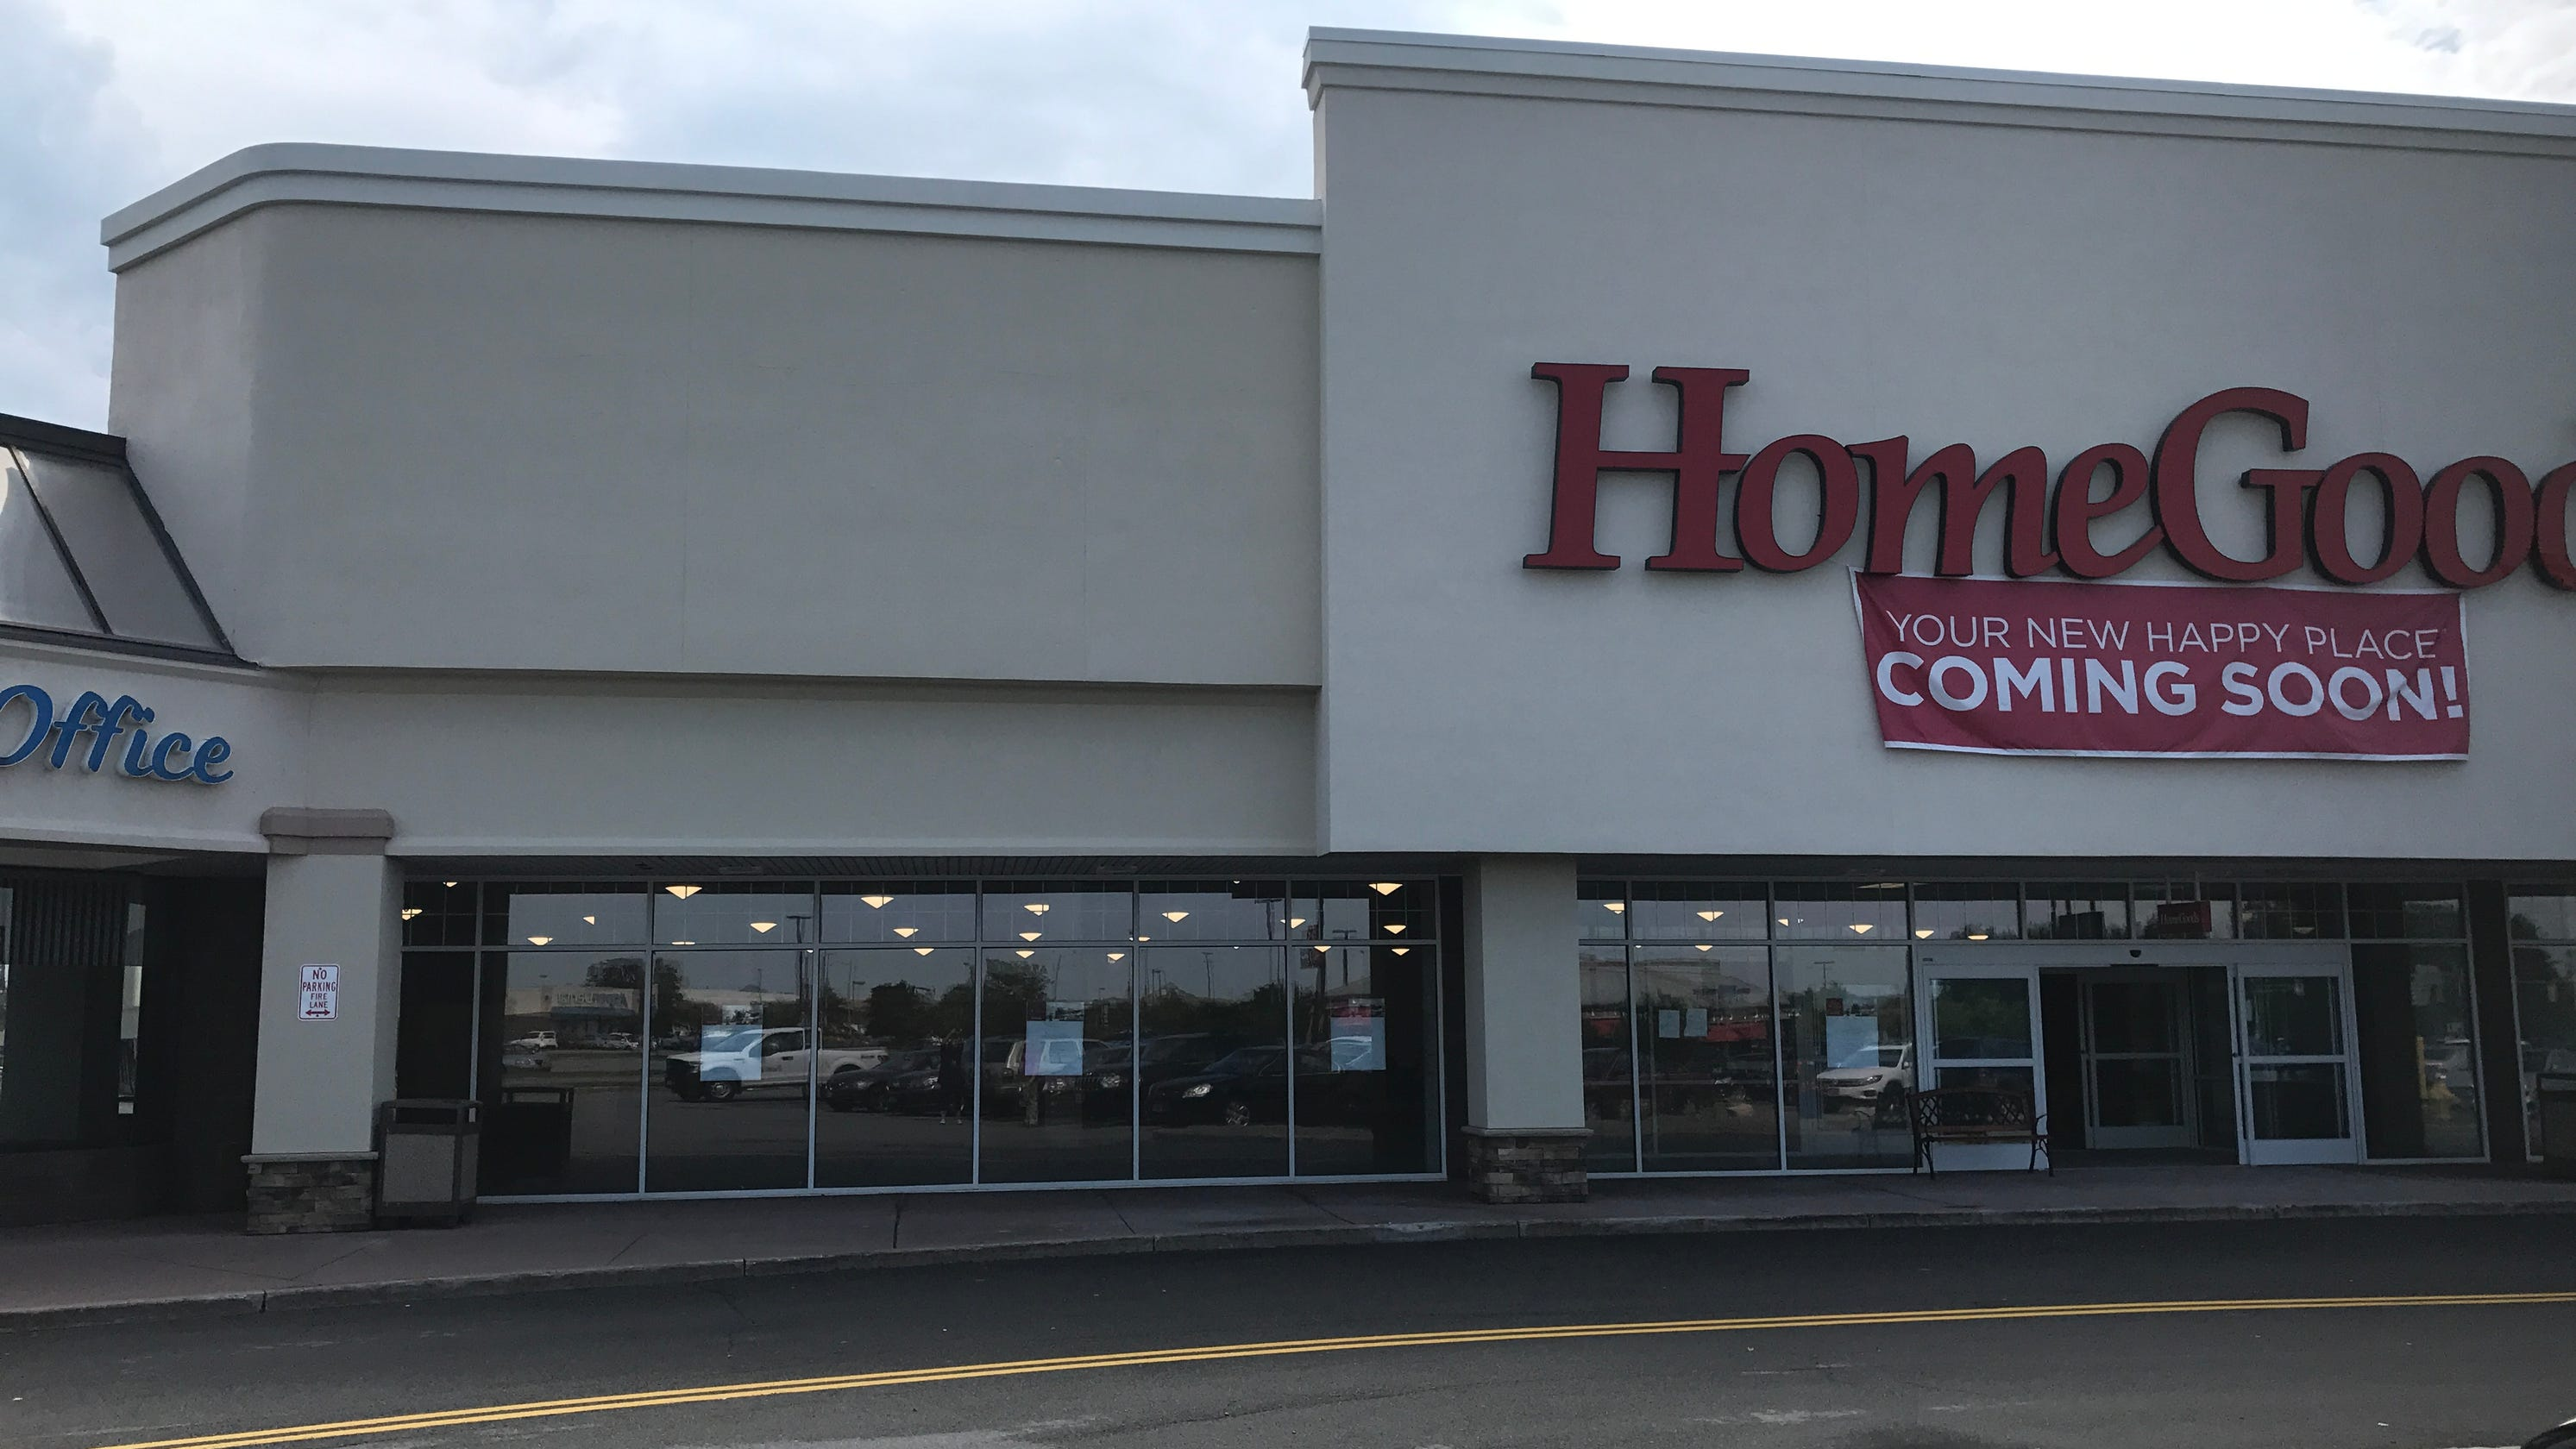 Homegoods In Greece Ny Set To Open